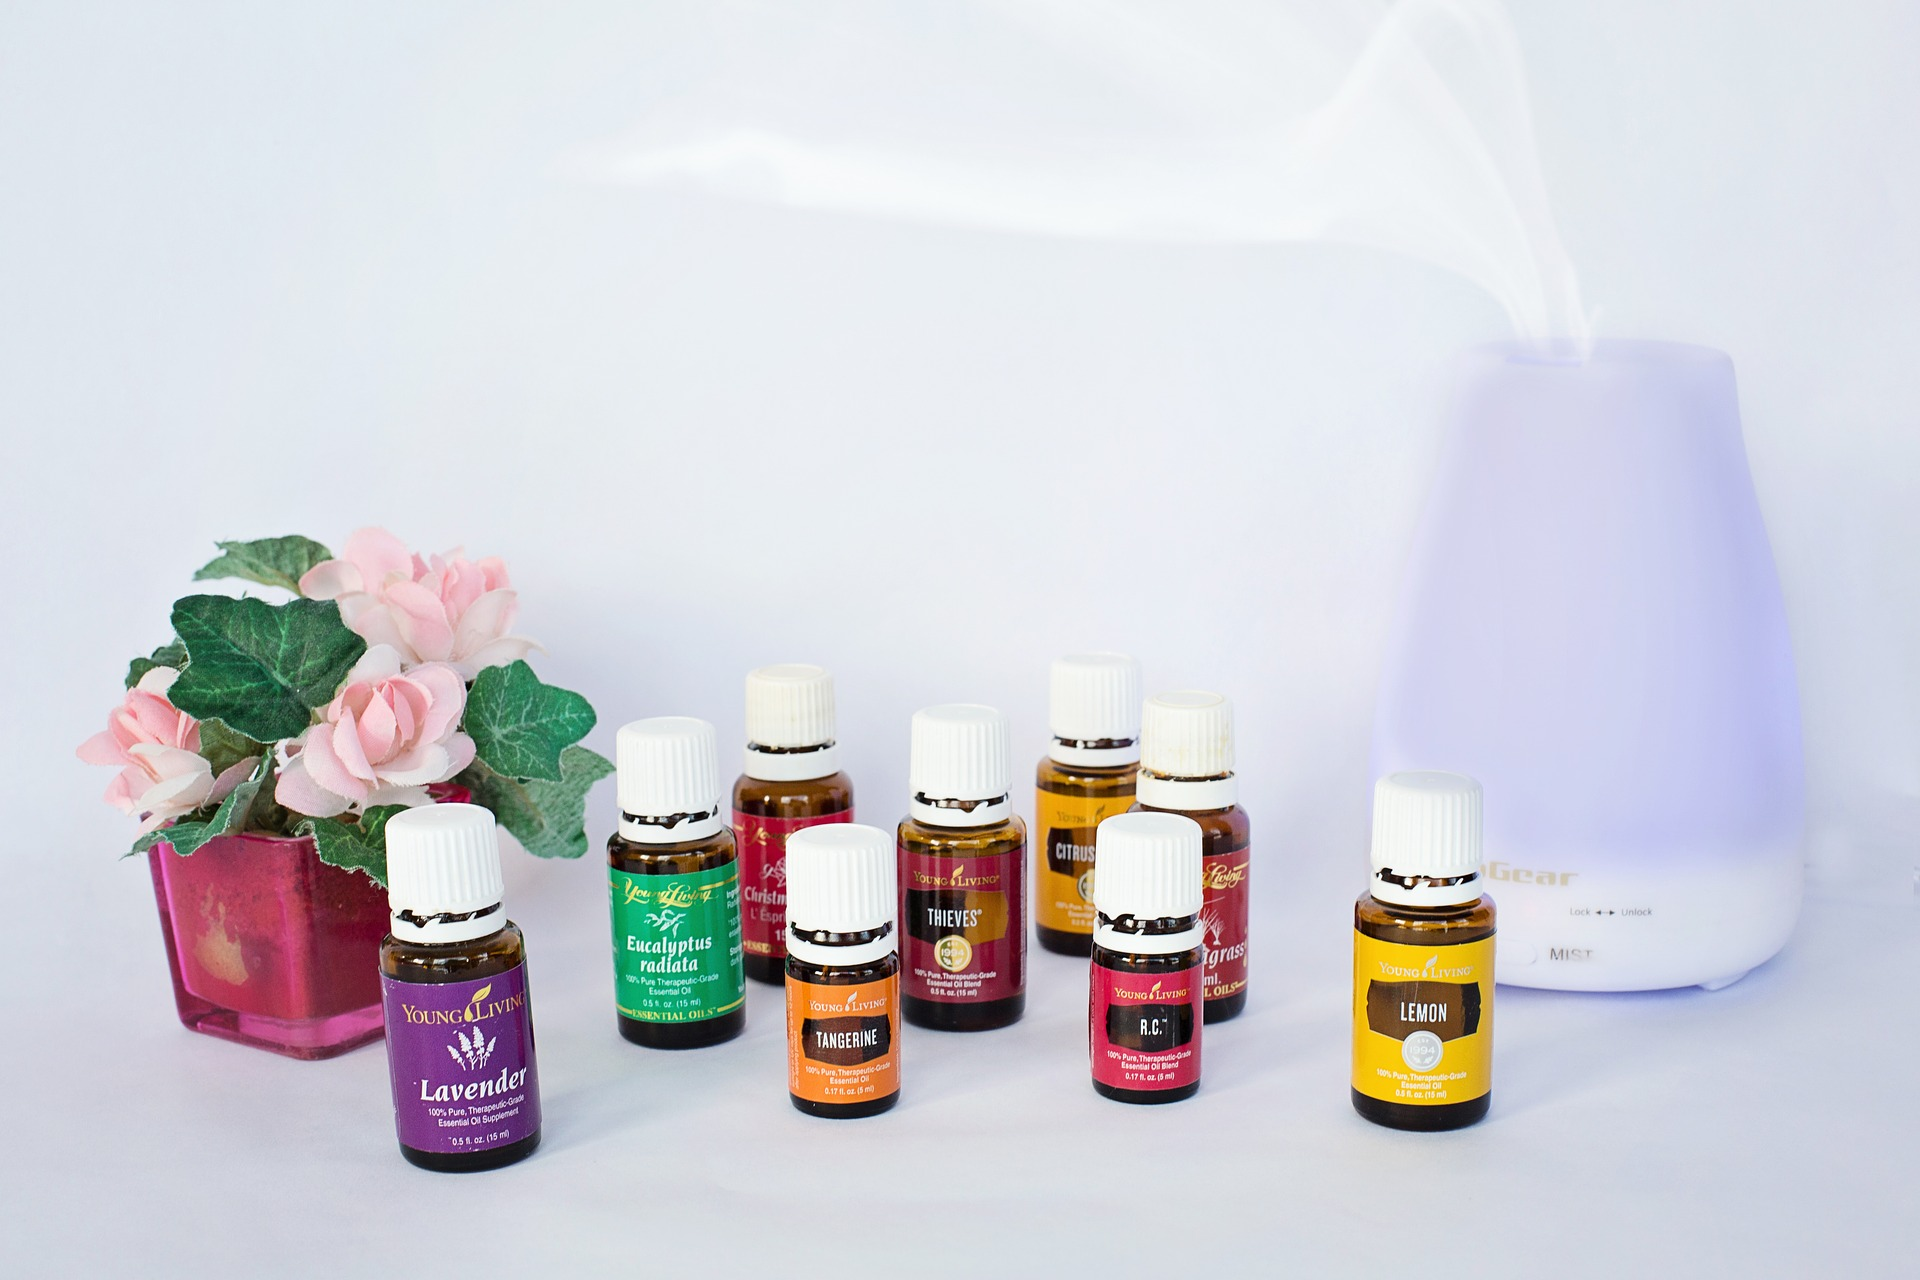 essential-oils-1958549_1920.jpg